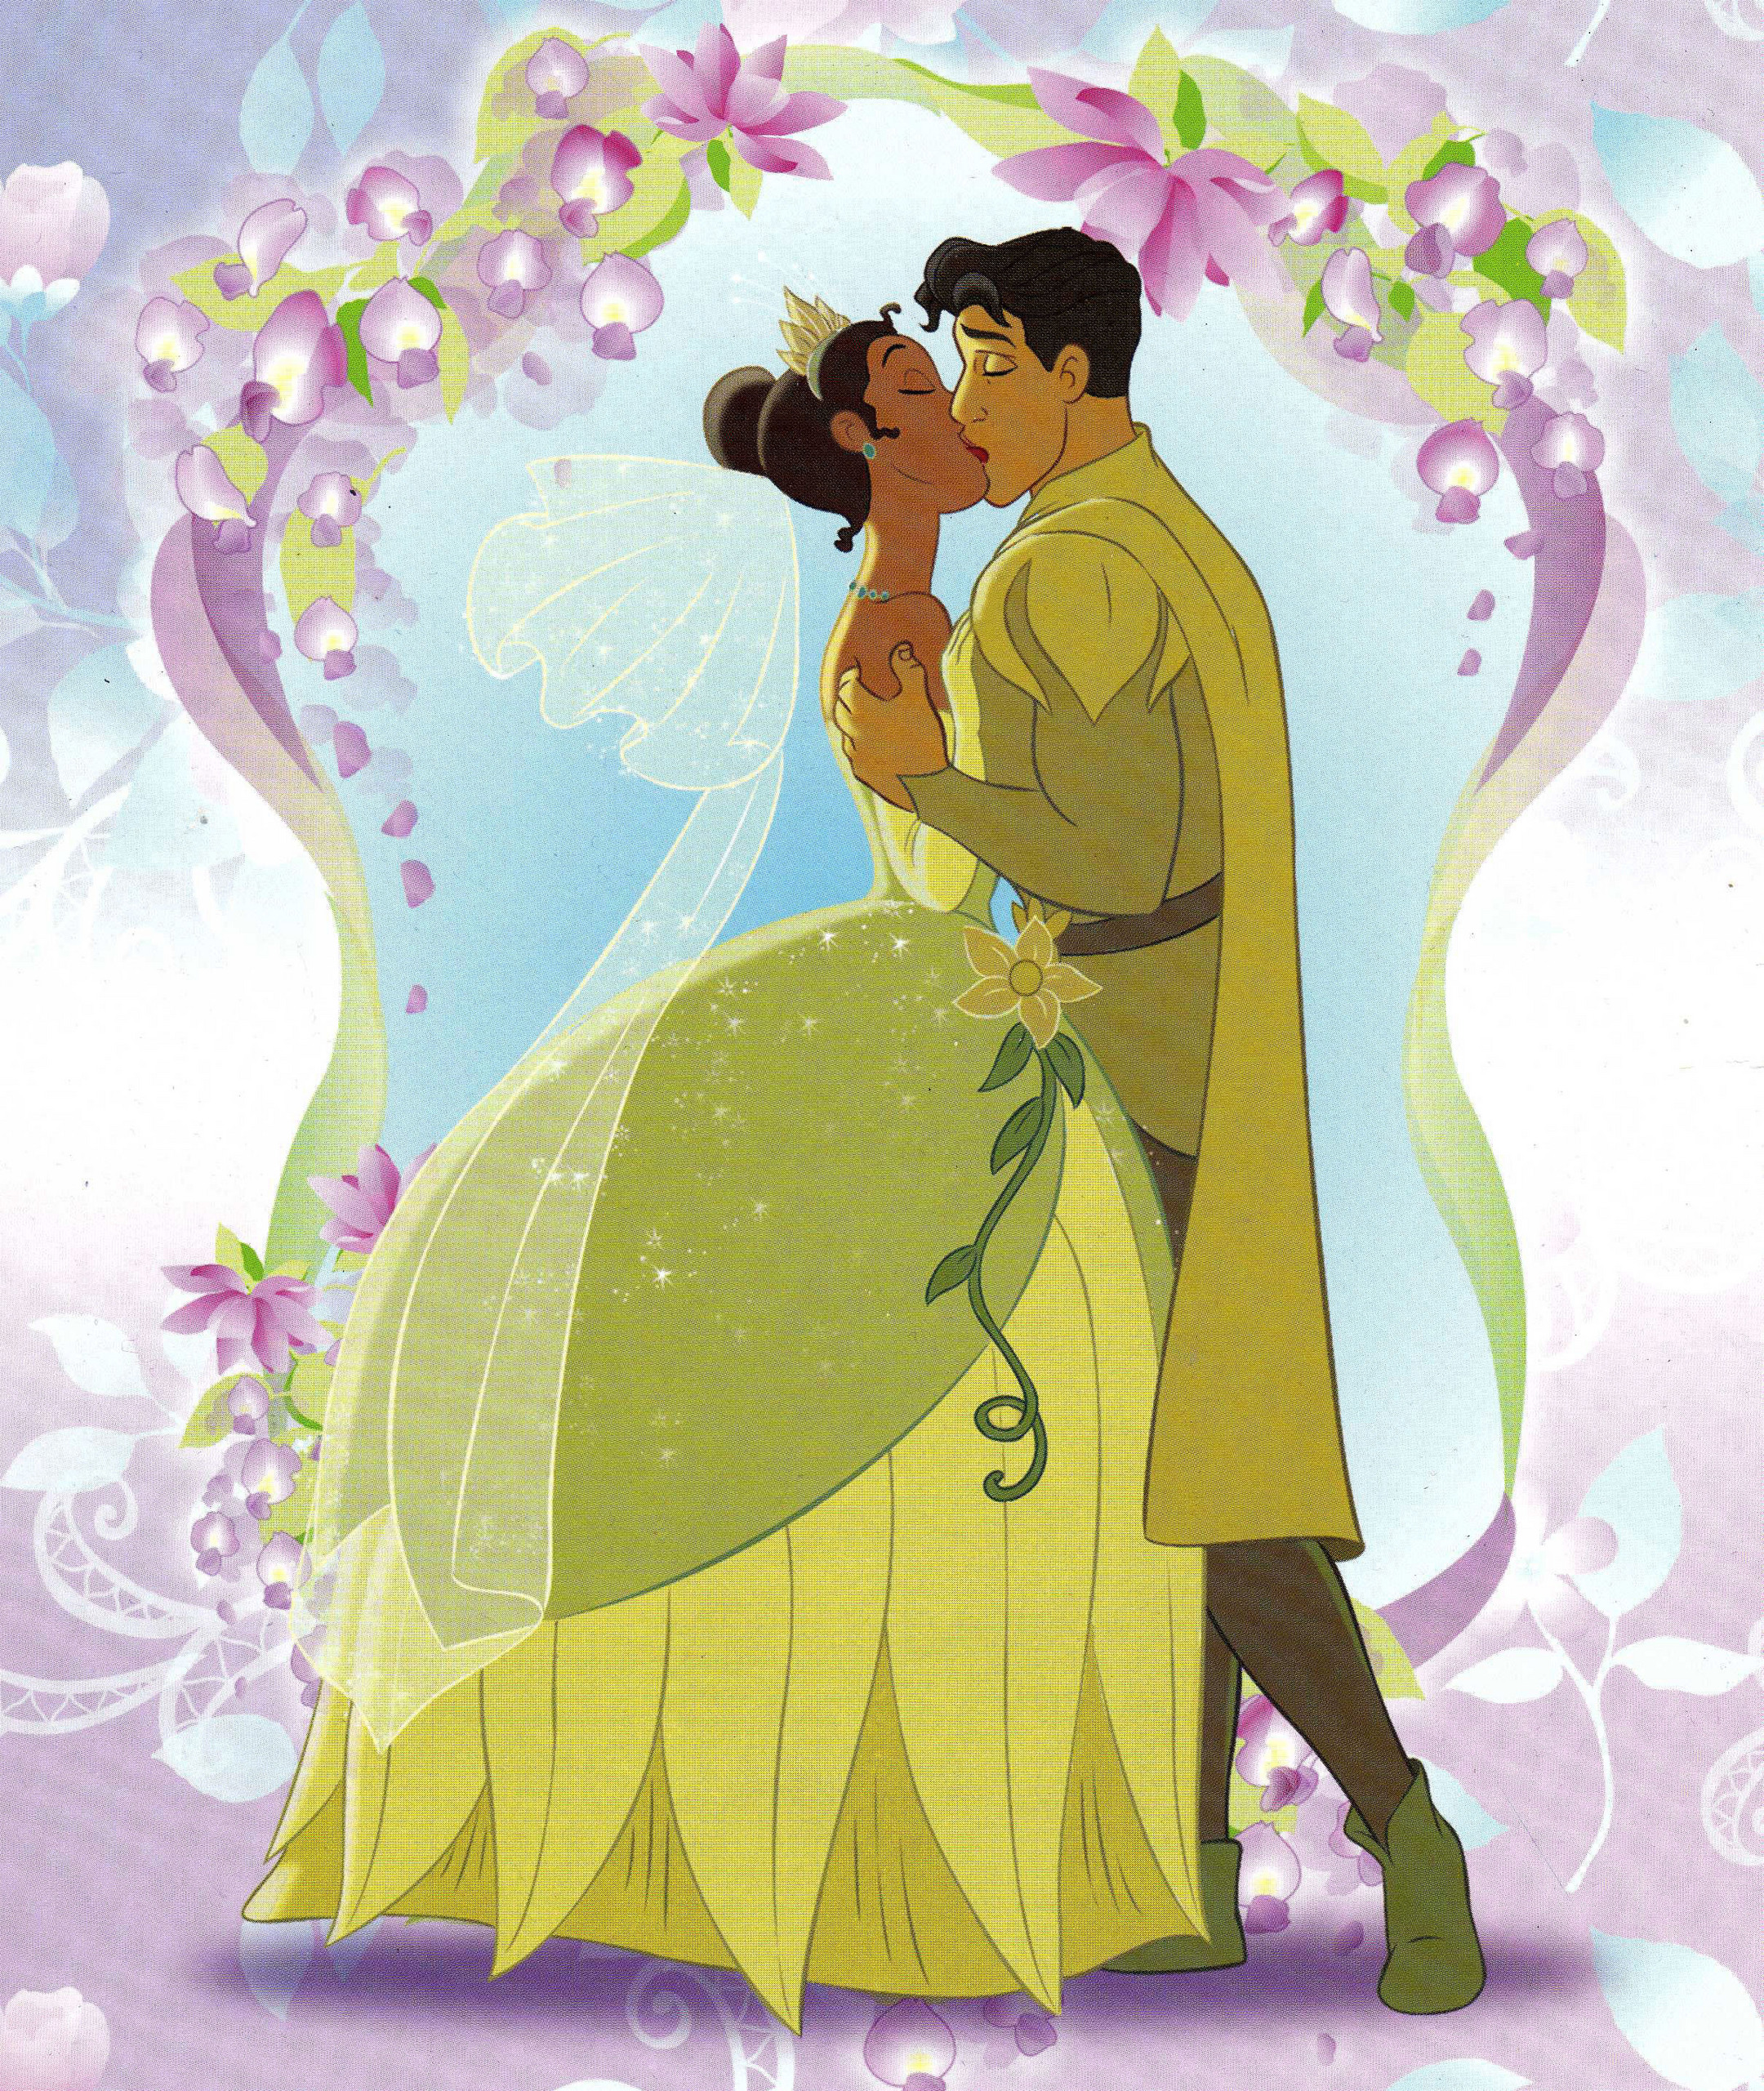 https://i1.wp.com/images4.fanpop.com/image/photos/17900000/Tiana-Naveen-s-kiss-the-princess-and-the-frog-17996805-2160-2560.jpg